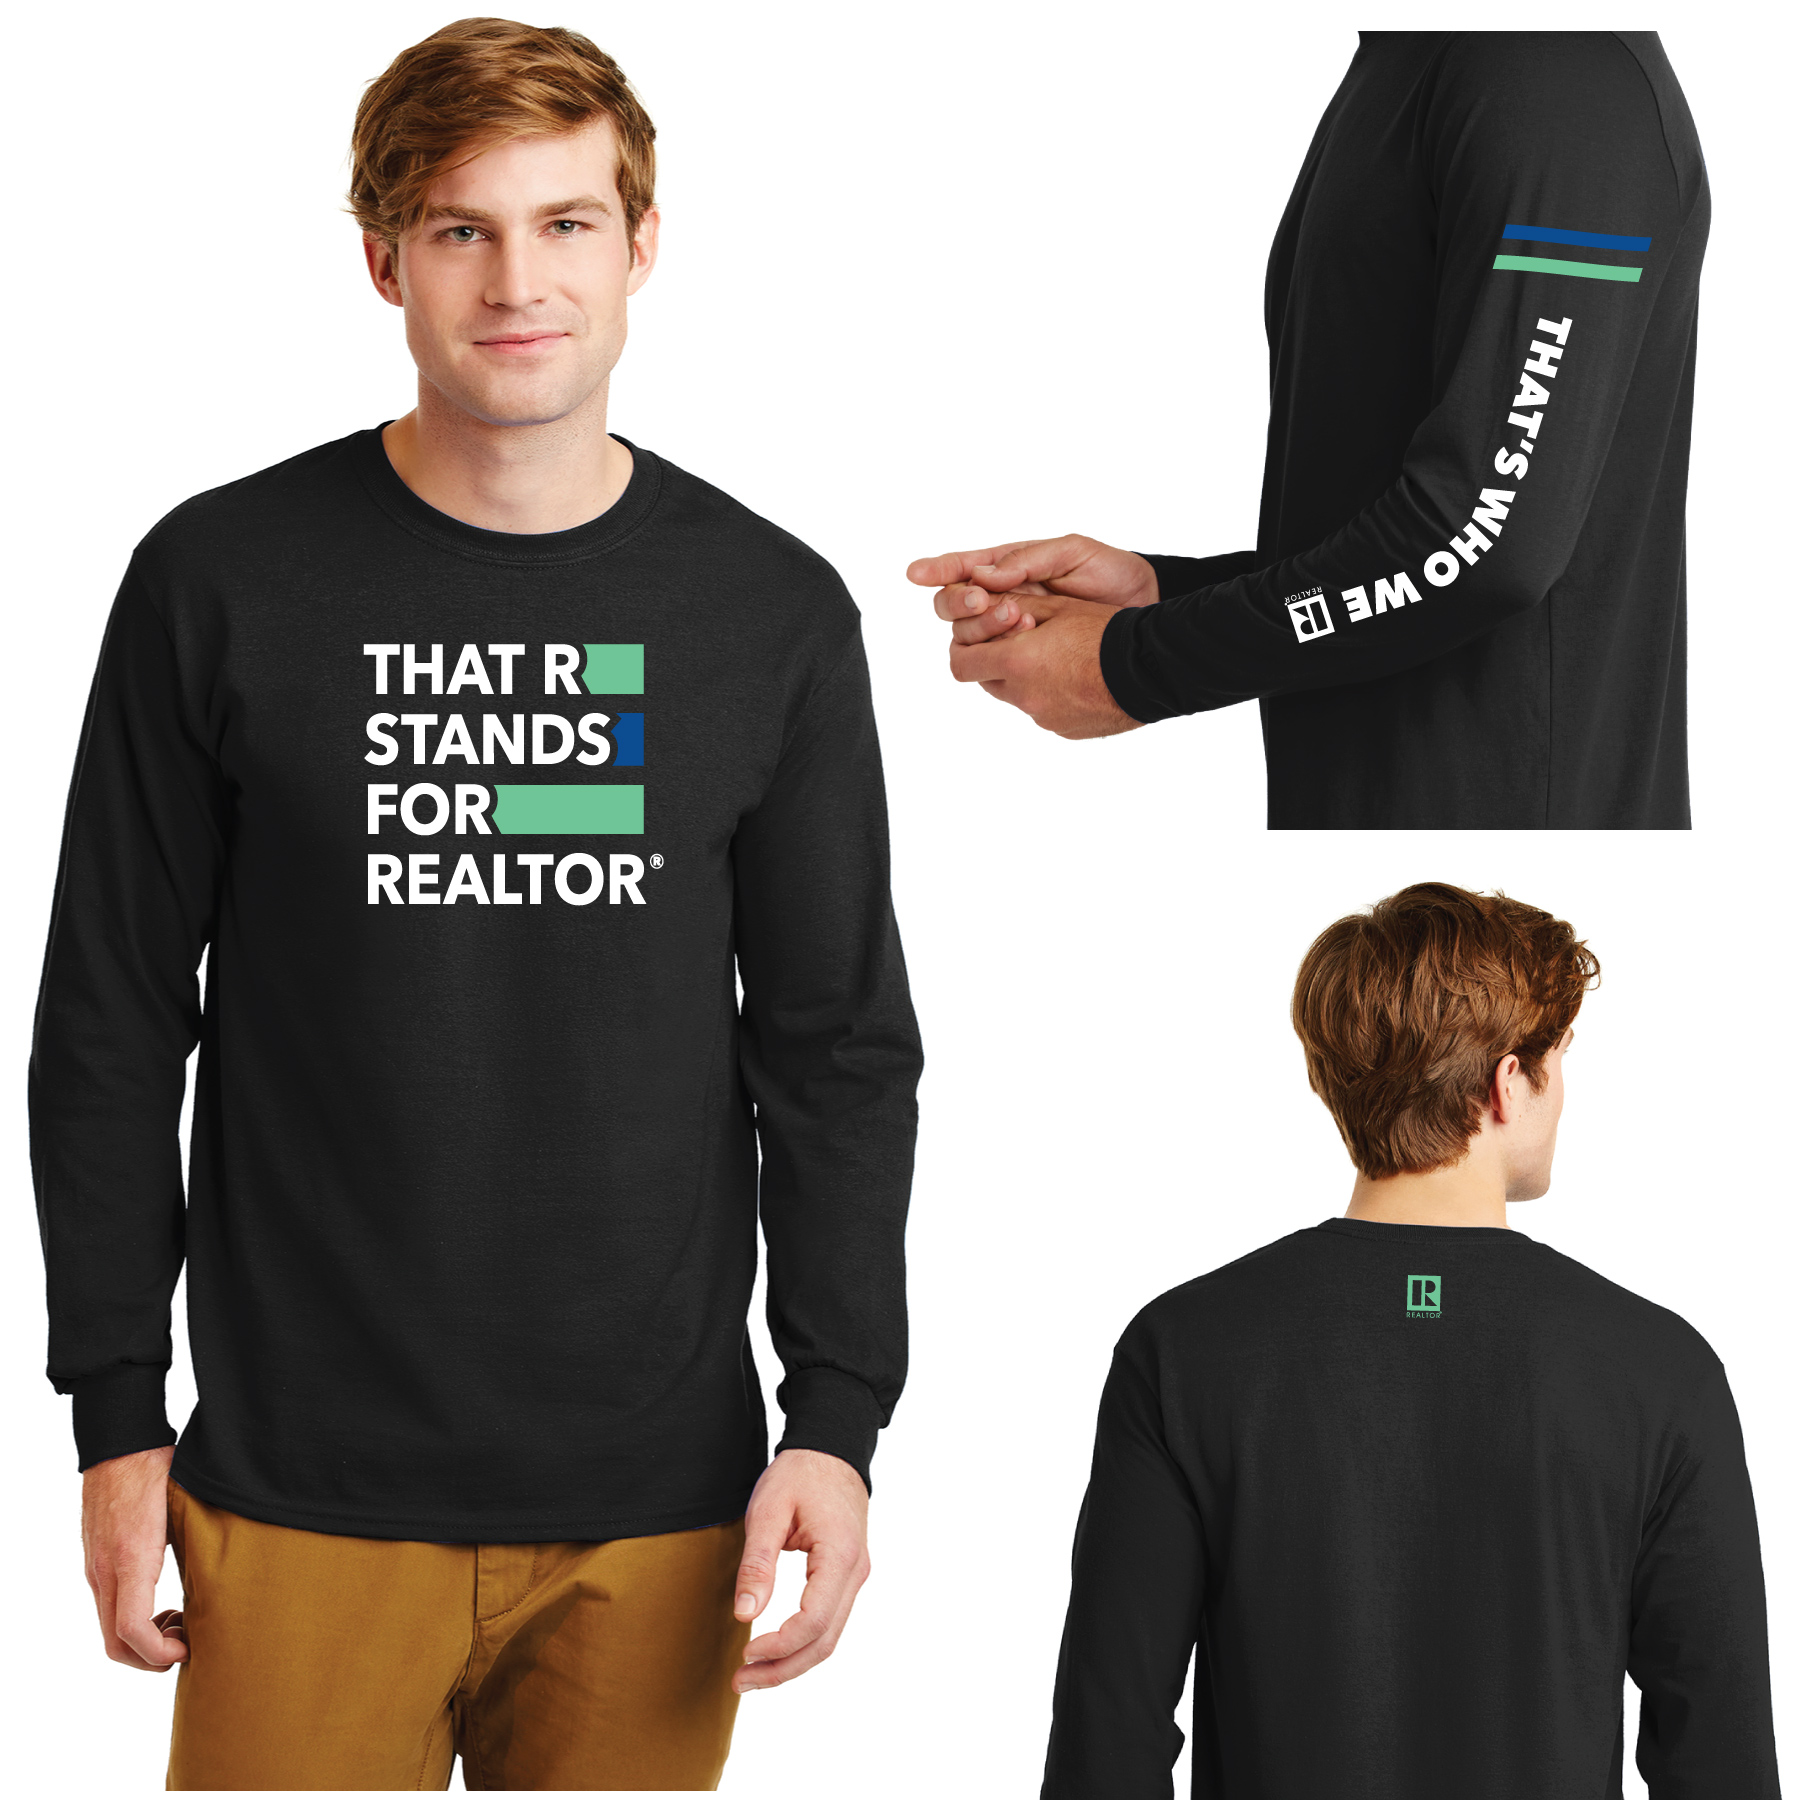 """That R Stands for REALTOR®"" Long Sleeve Value Tee Shirt TRSFR,twwr,ThatsWhoWeR,That's,TWWR,ThatWho,That'sWho,Twwr,Thats,Whos,We,Ares,Tees,T-shirt,Tee,Casual,Values,Tees,NewEra,Longs,Sleeves"